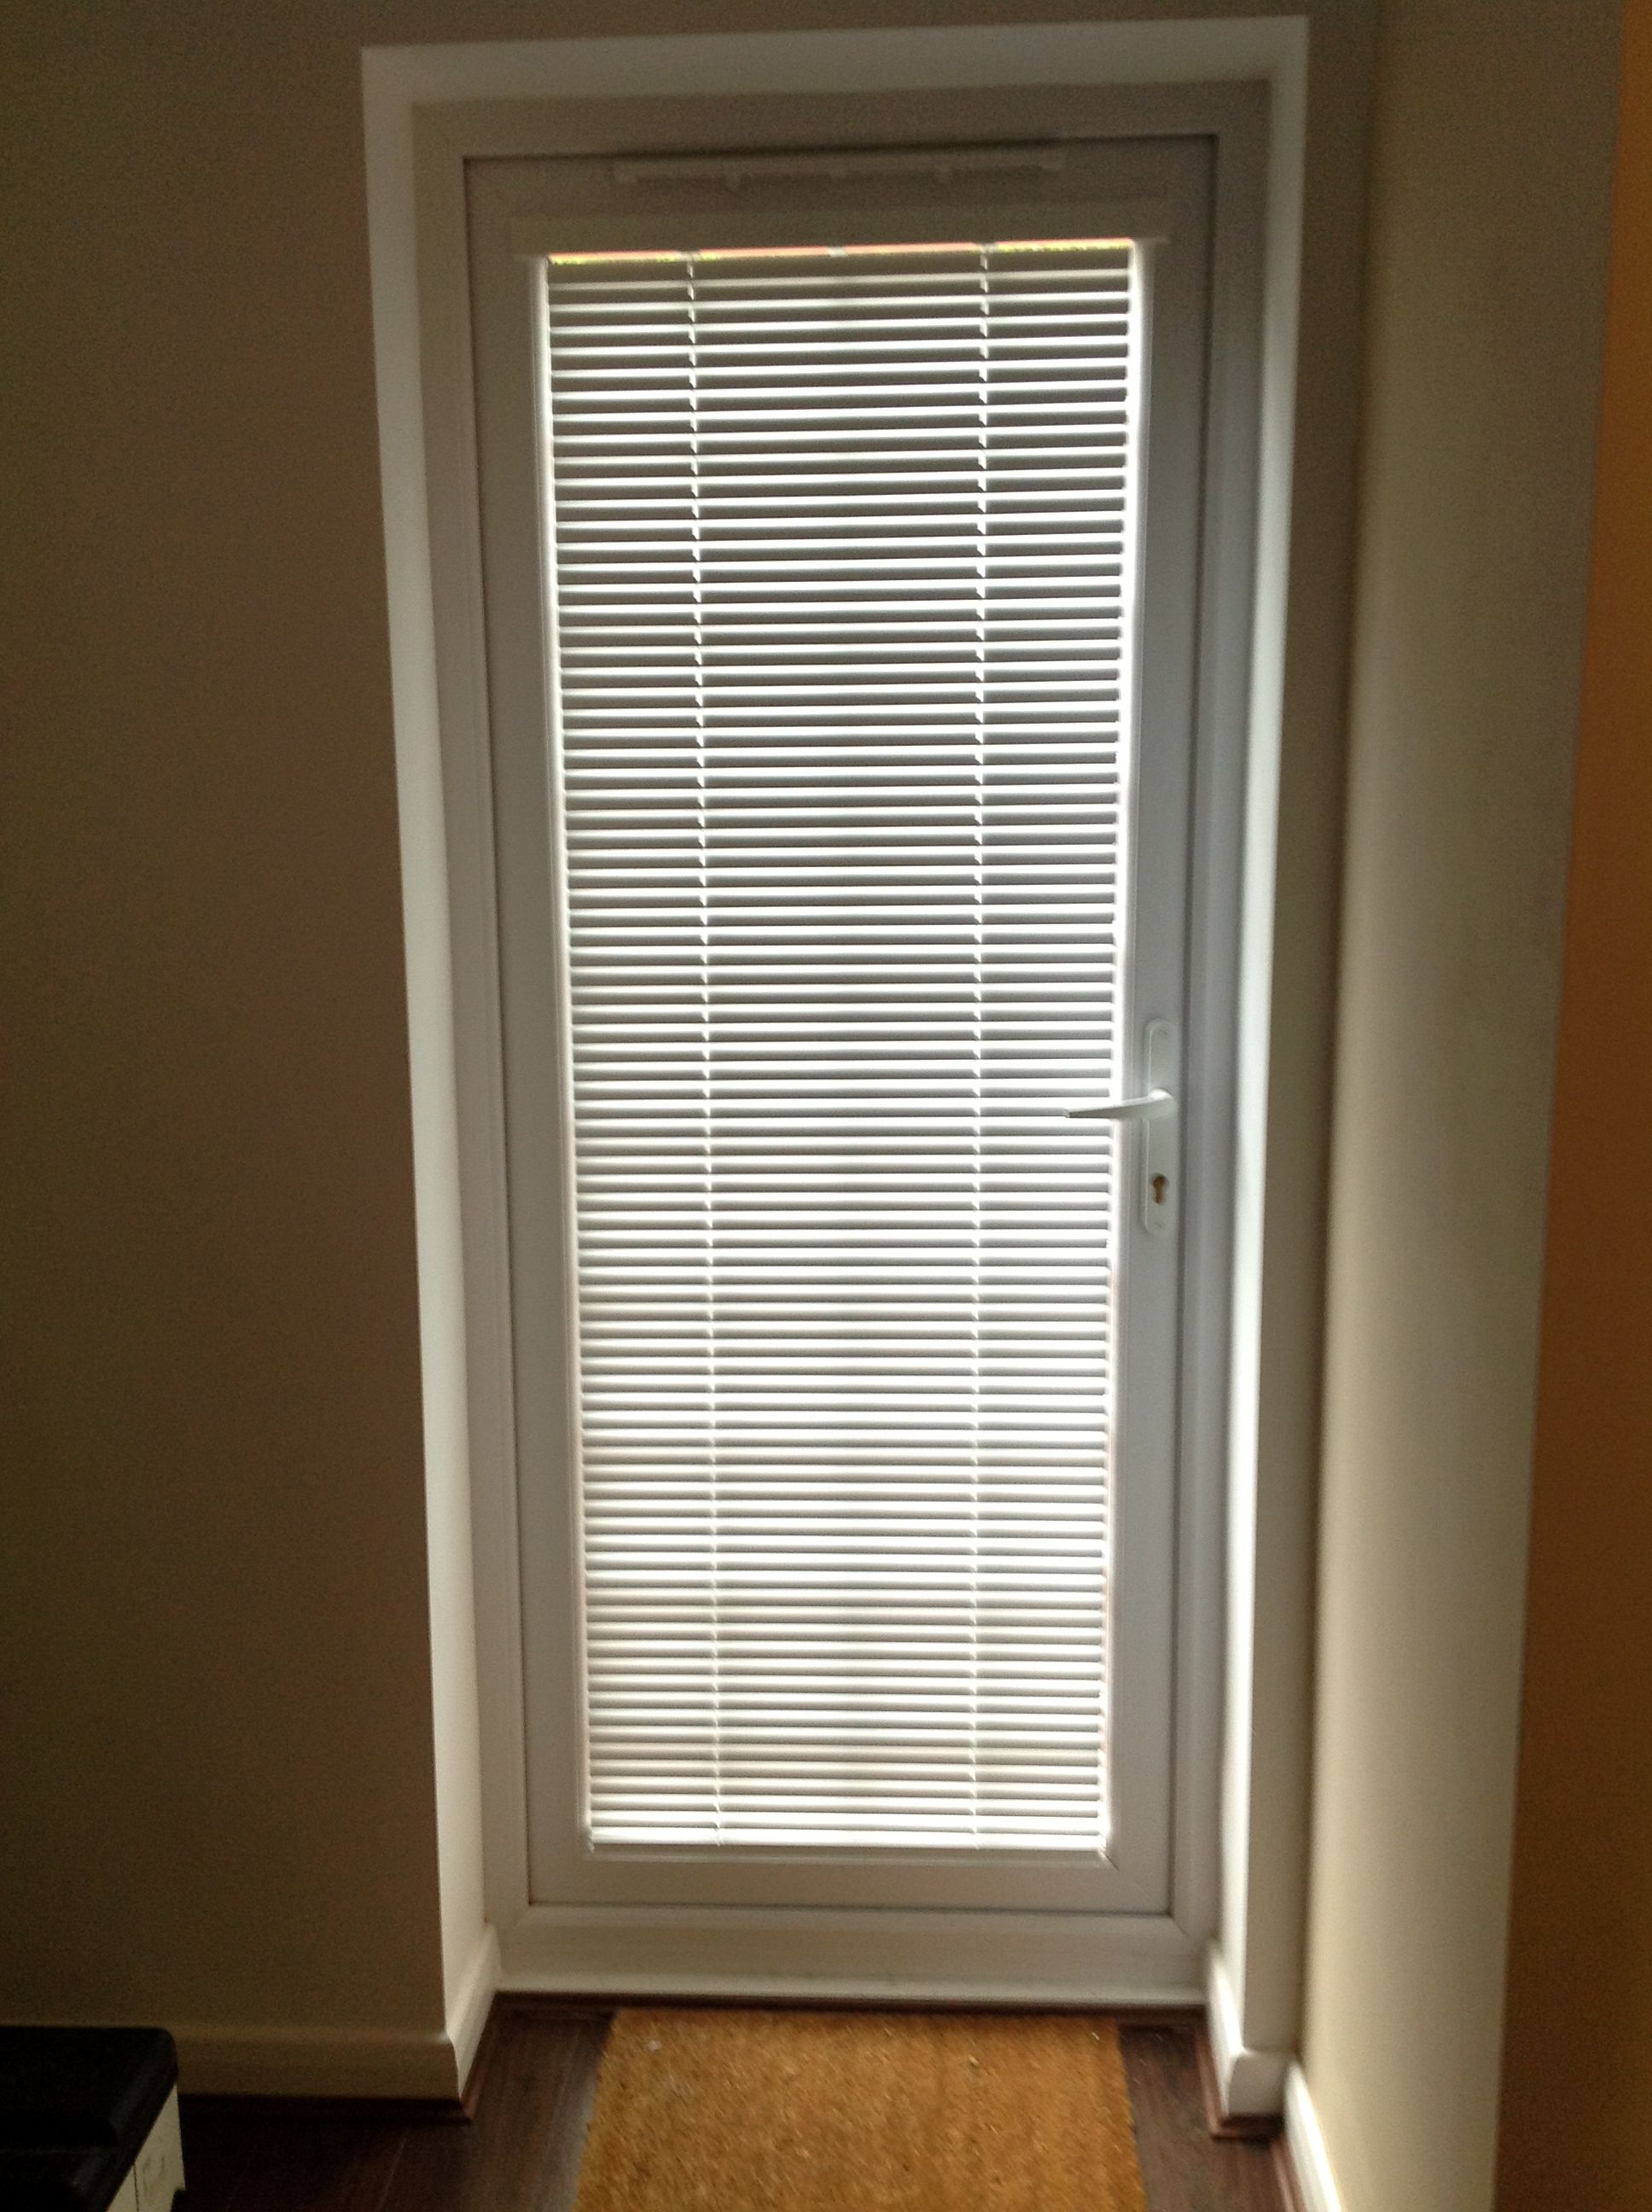 Intu pleated blinds fitted to door intu blinds pinterest window